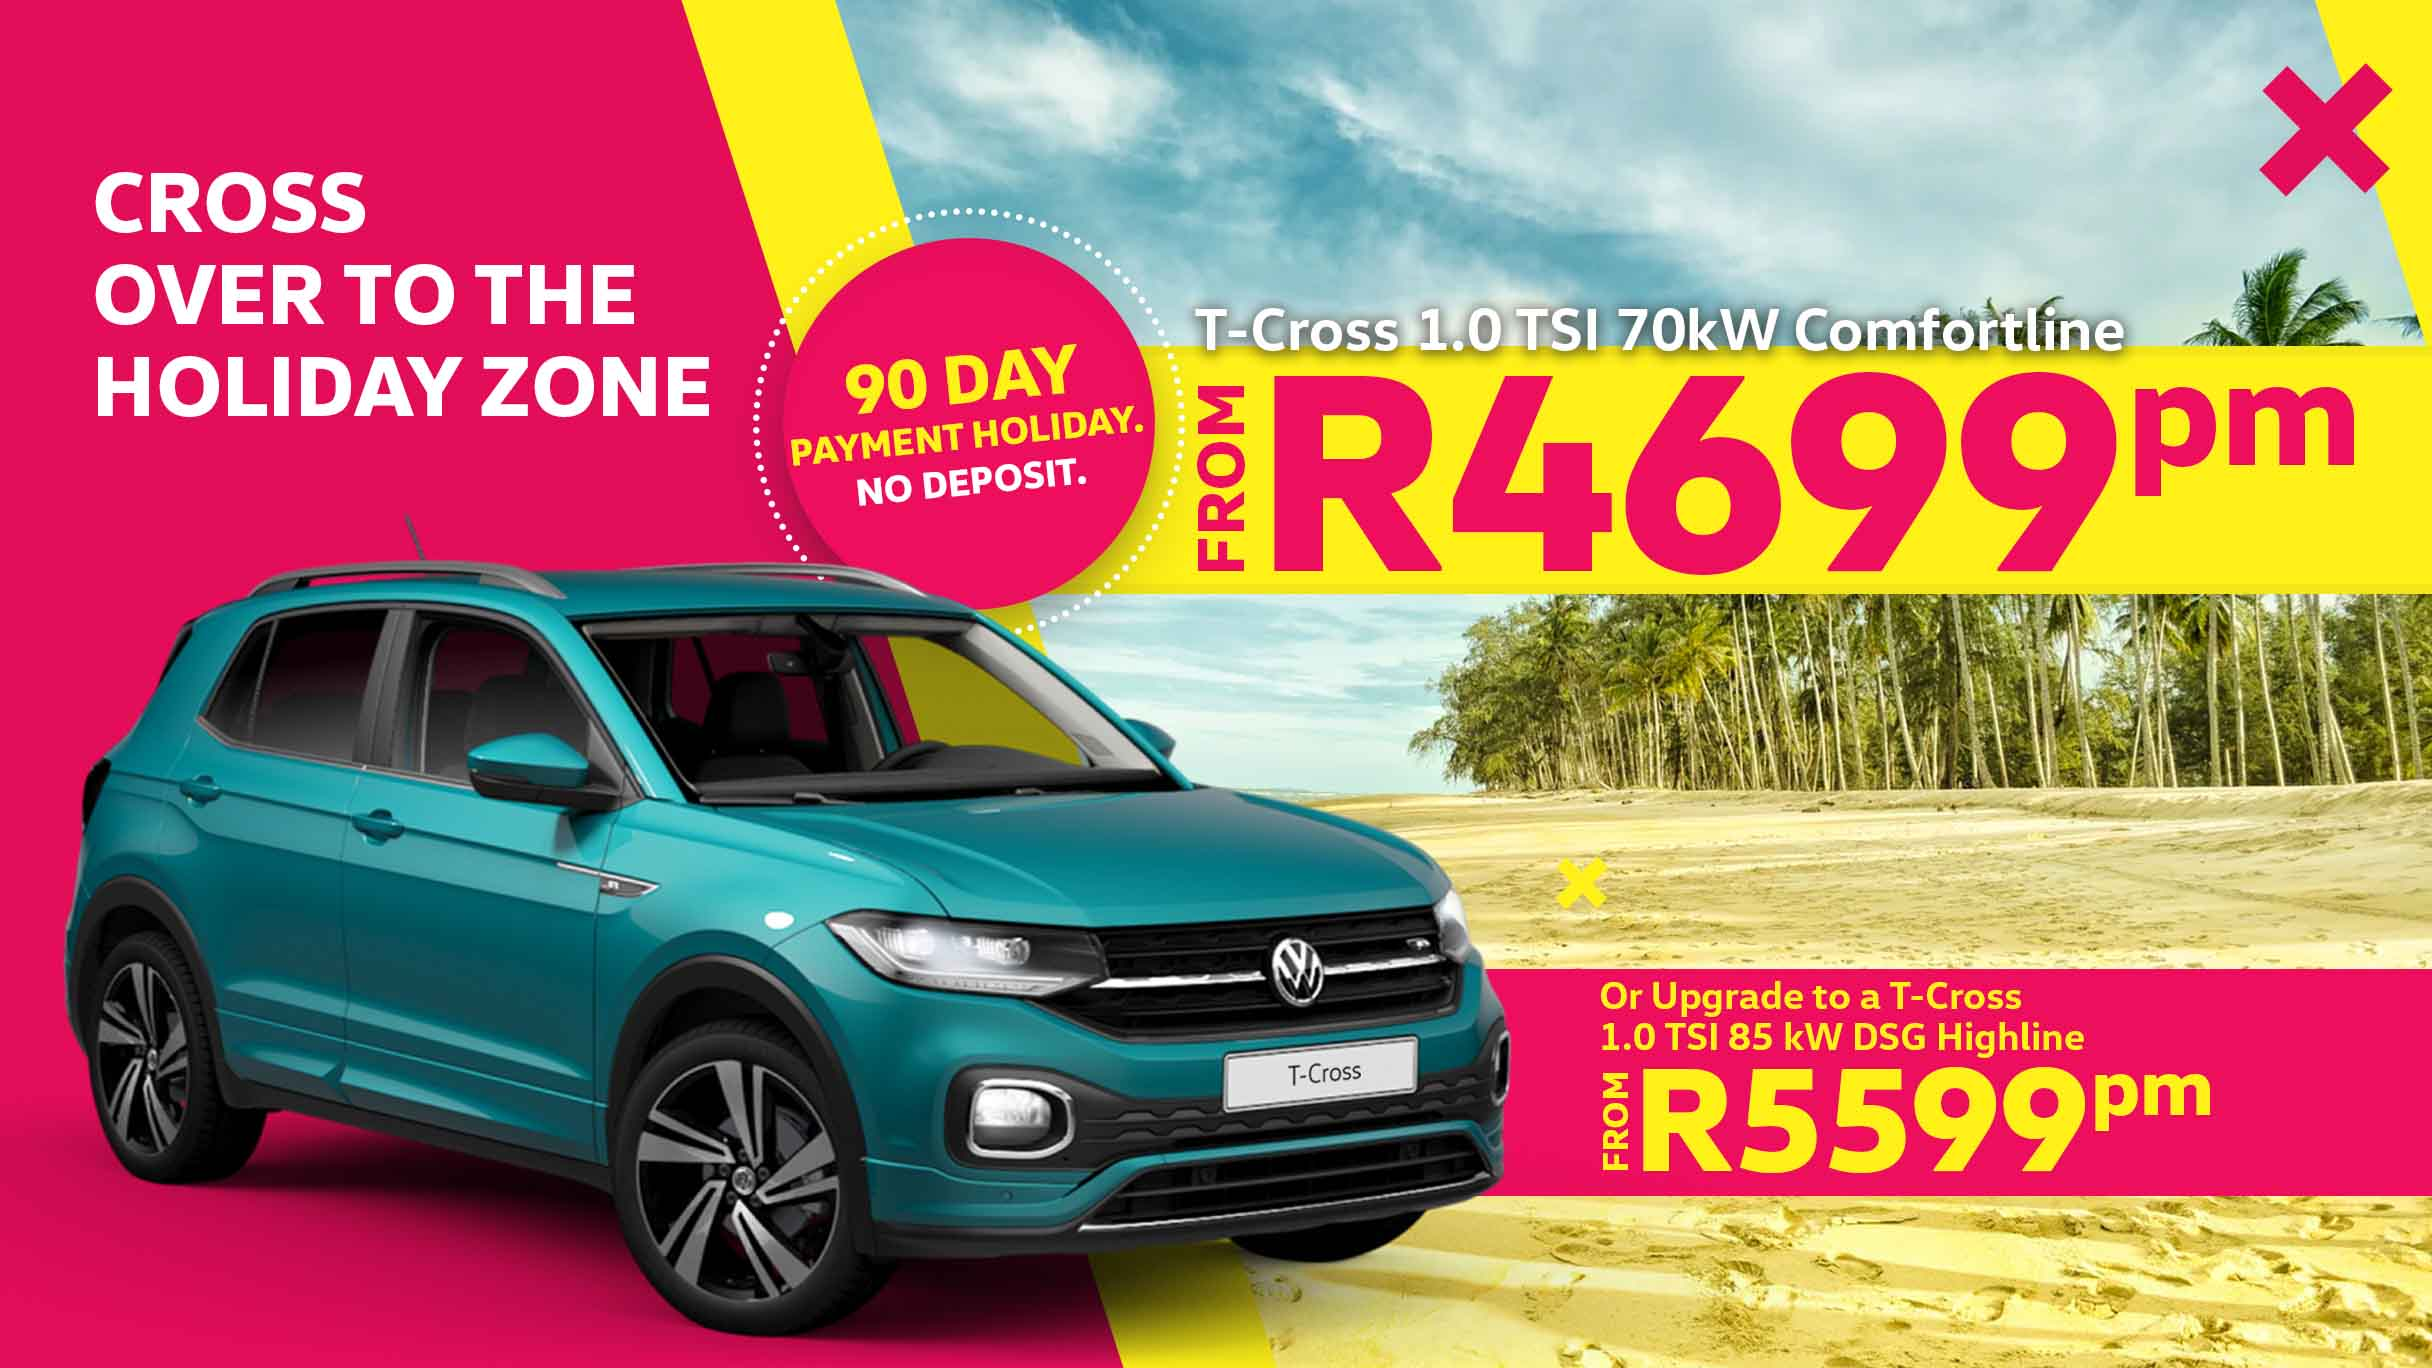 Barons Durban T-Cross special offer